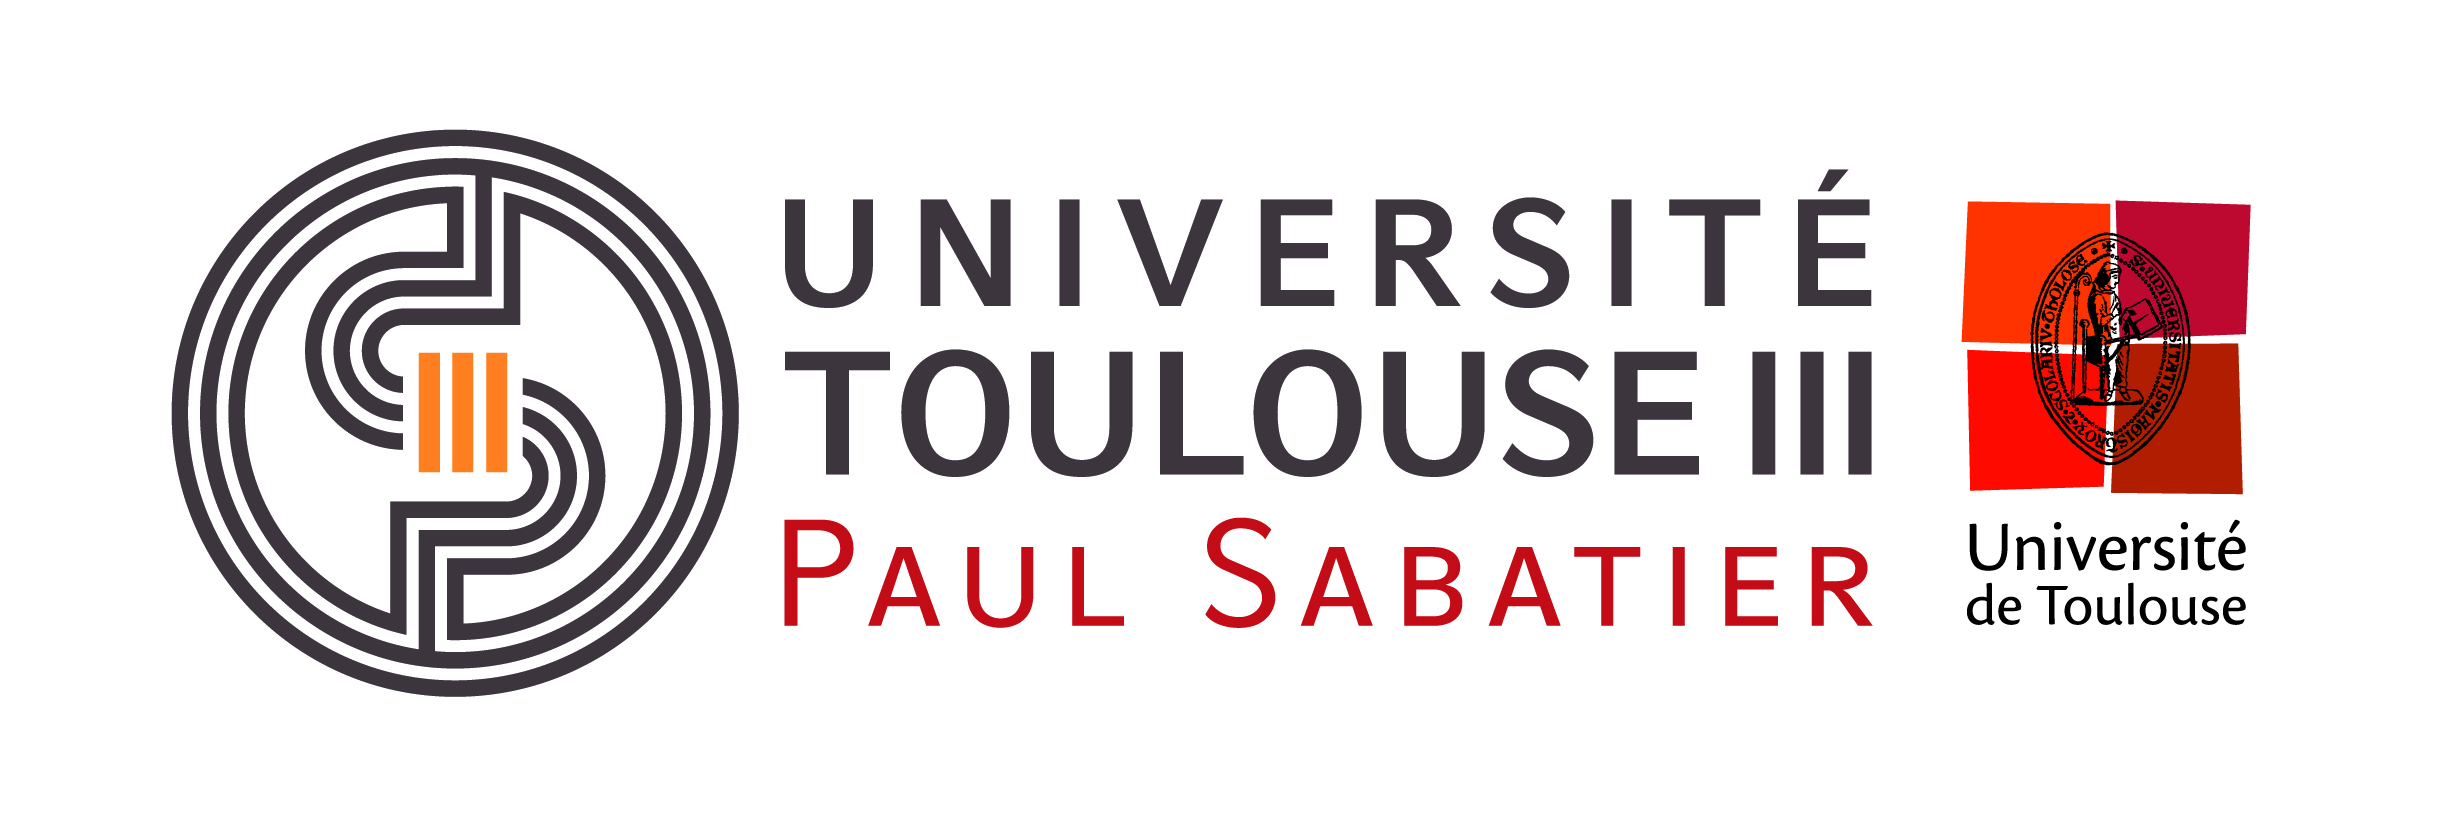 Logo University Toulouse Paul Sabatier